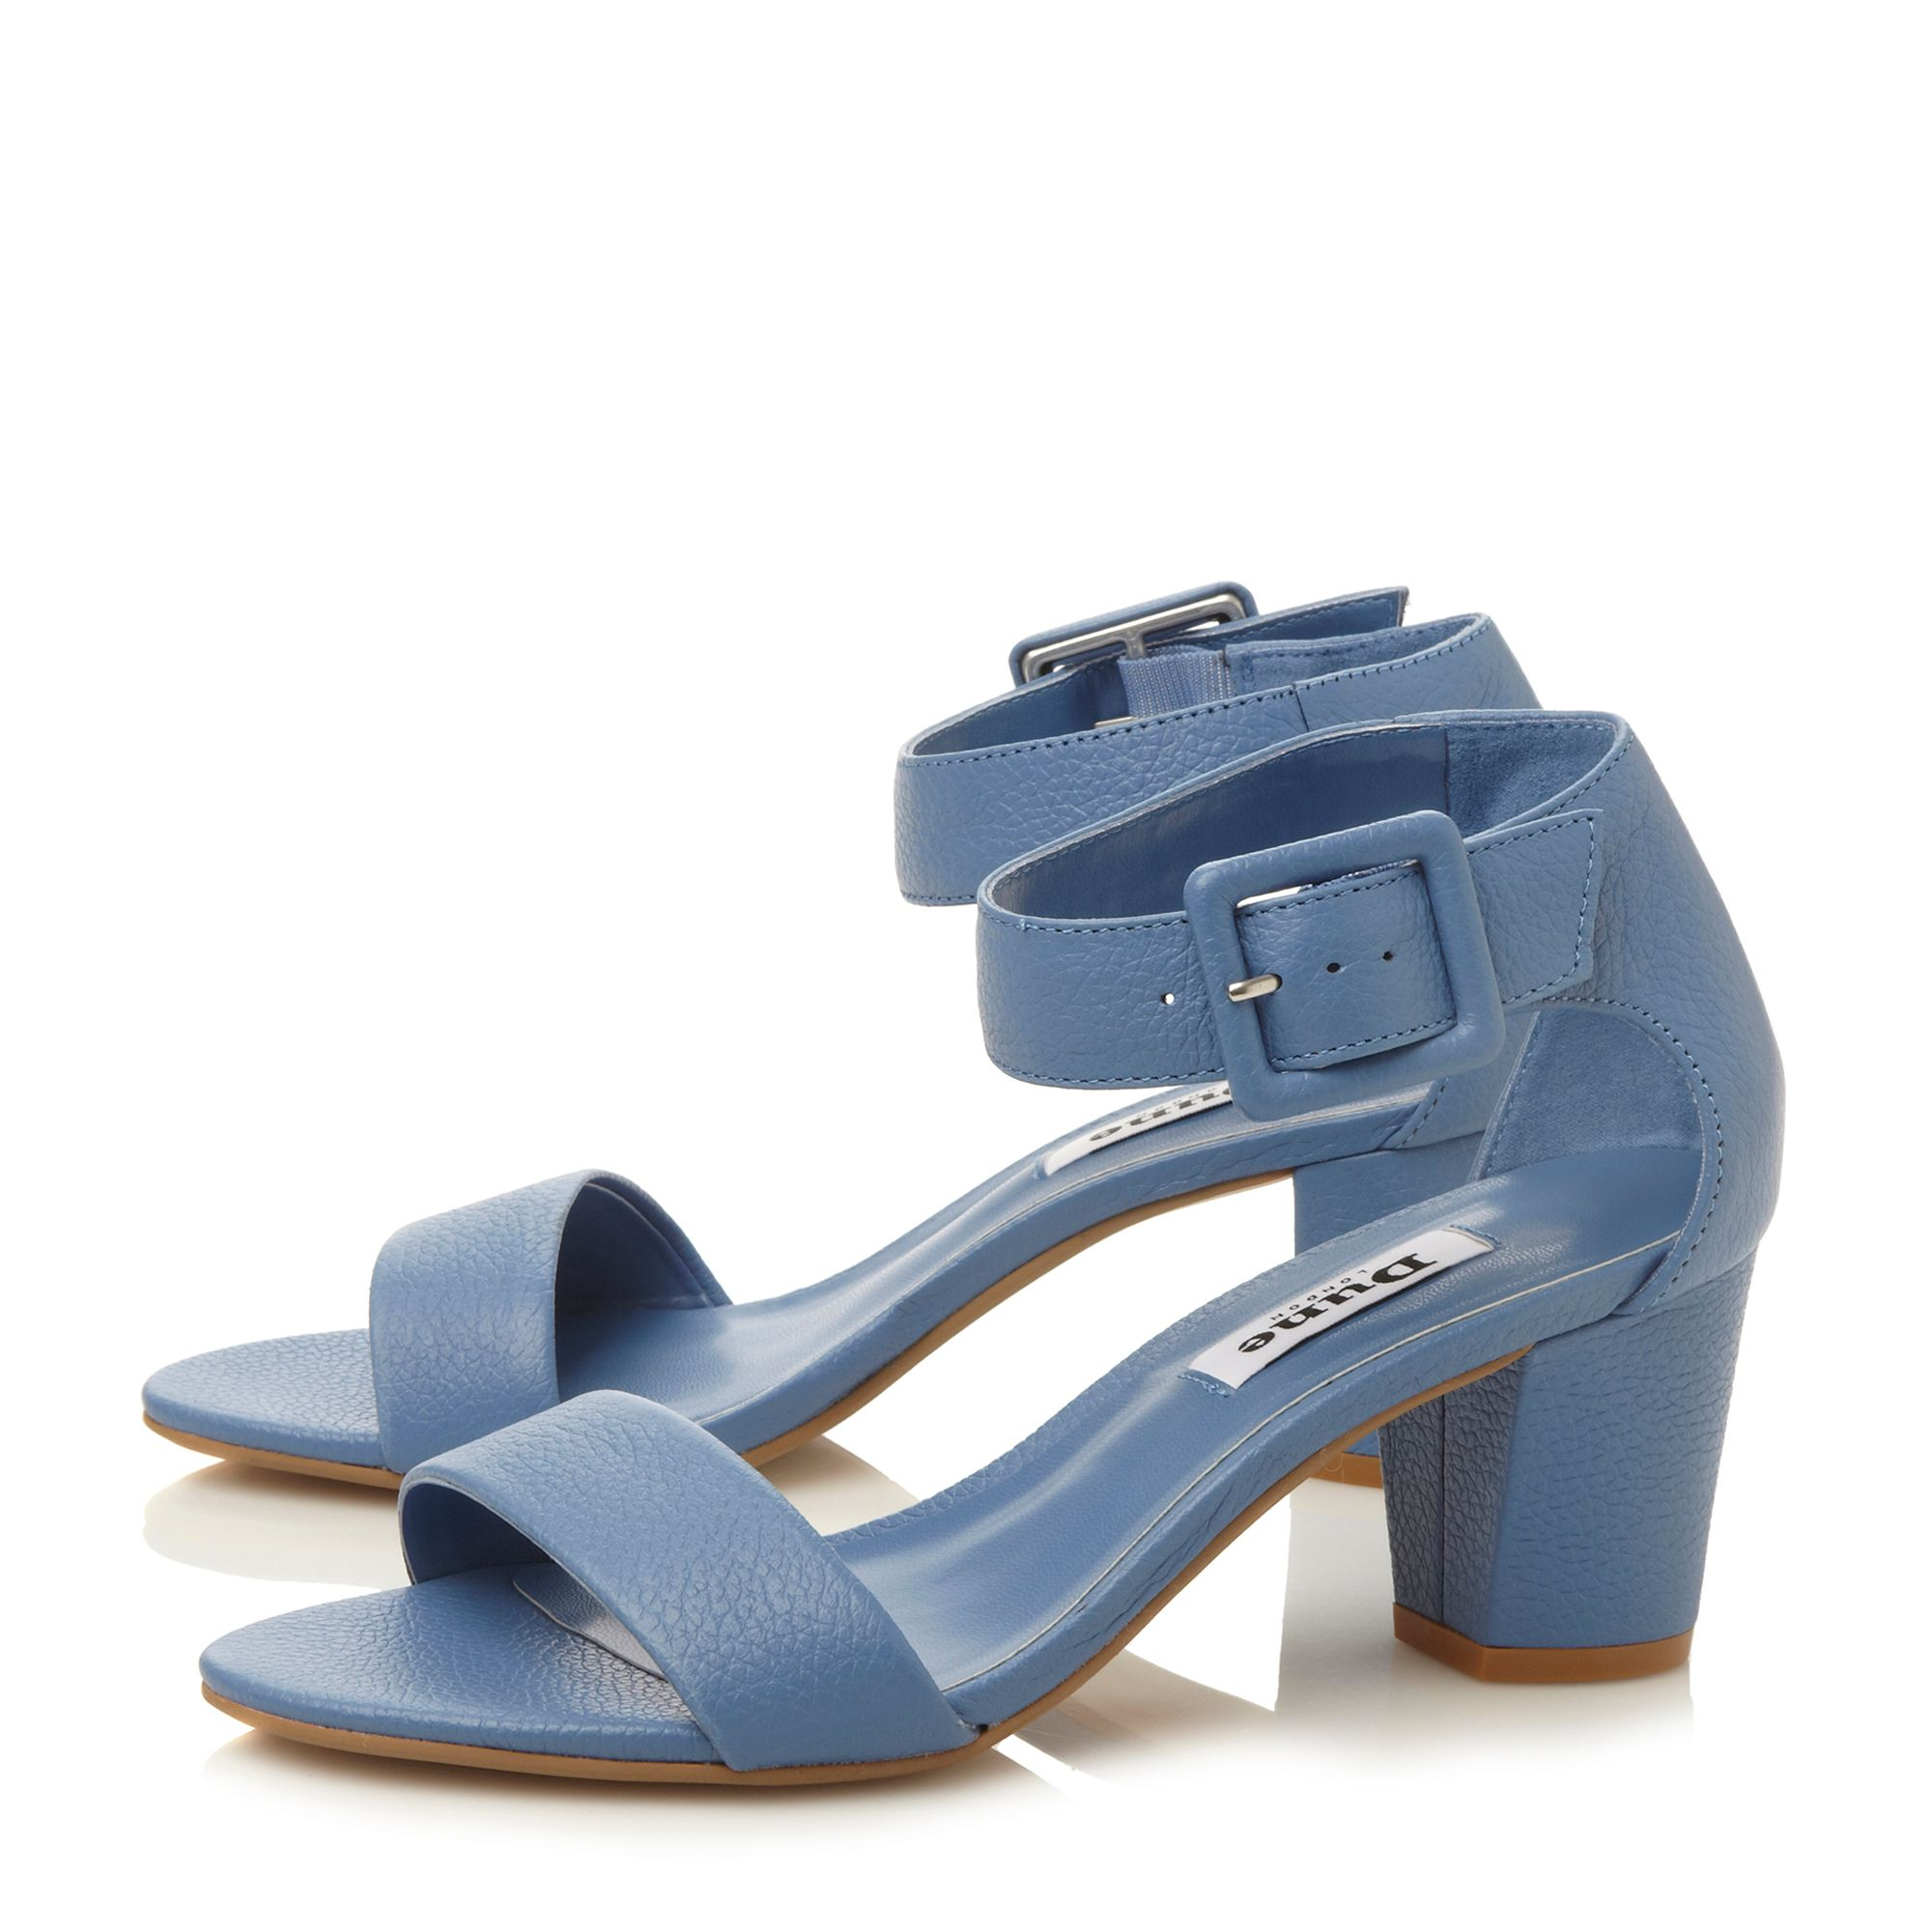 Fri two part low heel sandals